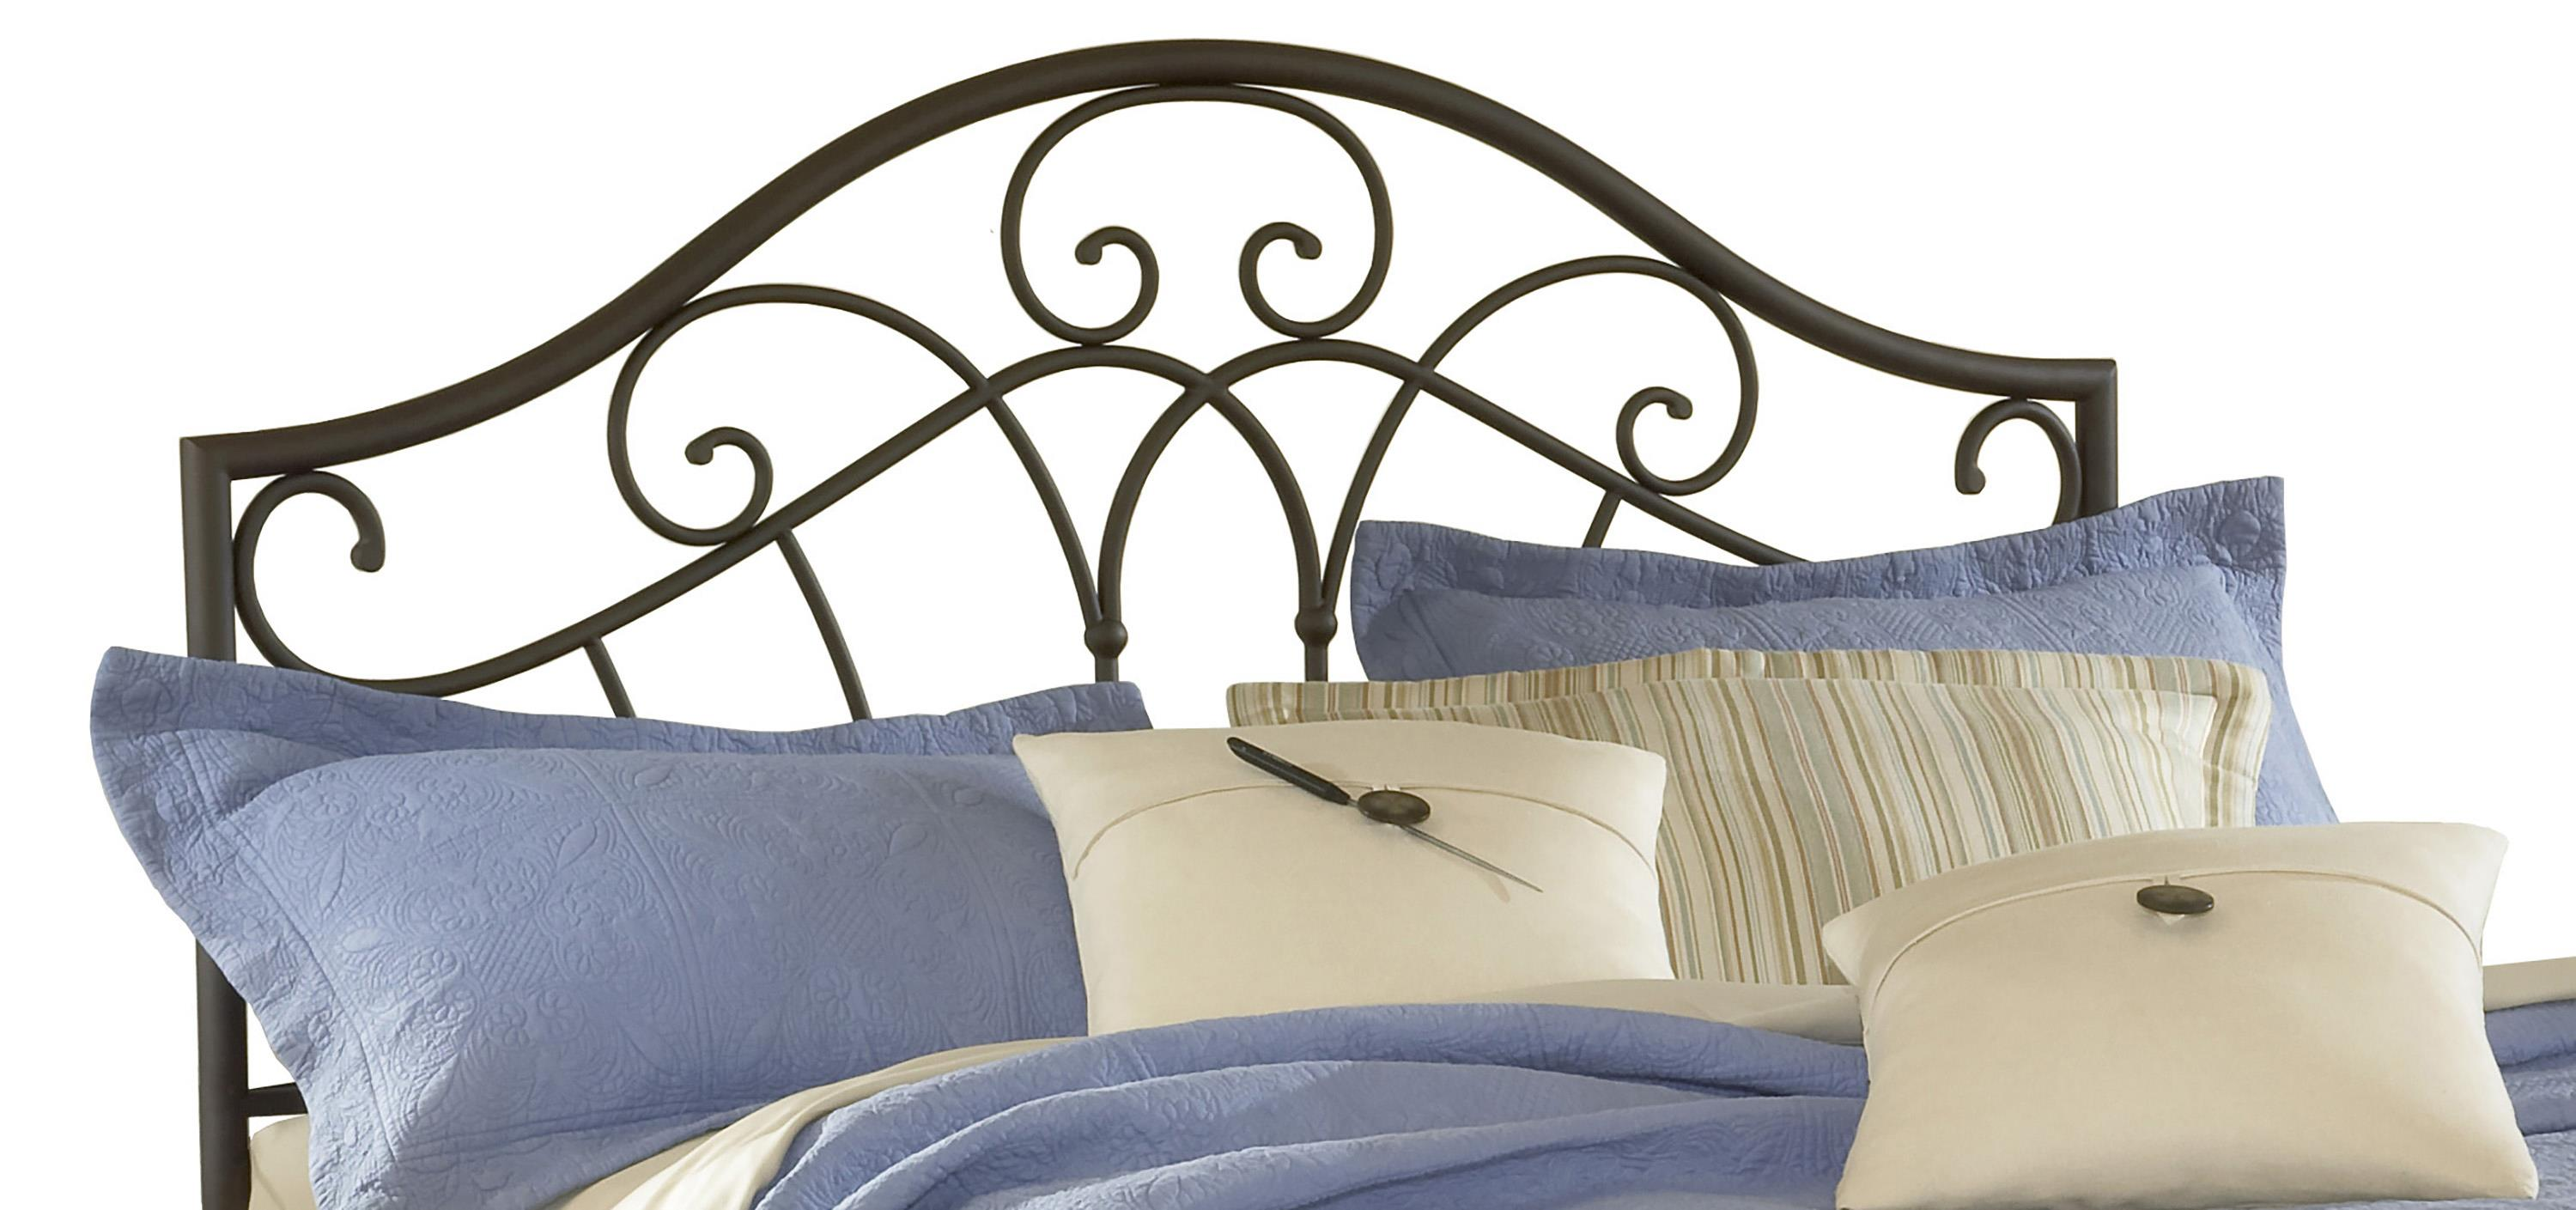 Hillsdale Metal Beds Josephine Full/ Queen Headboard - Item Number: 1544-490